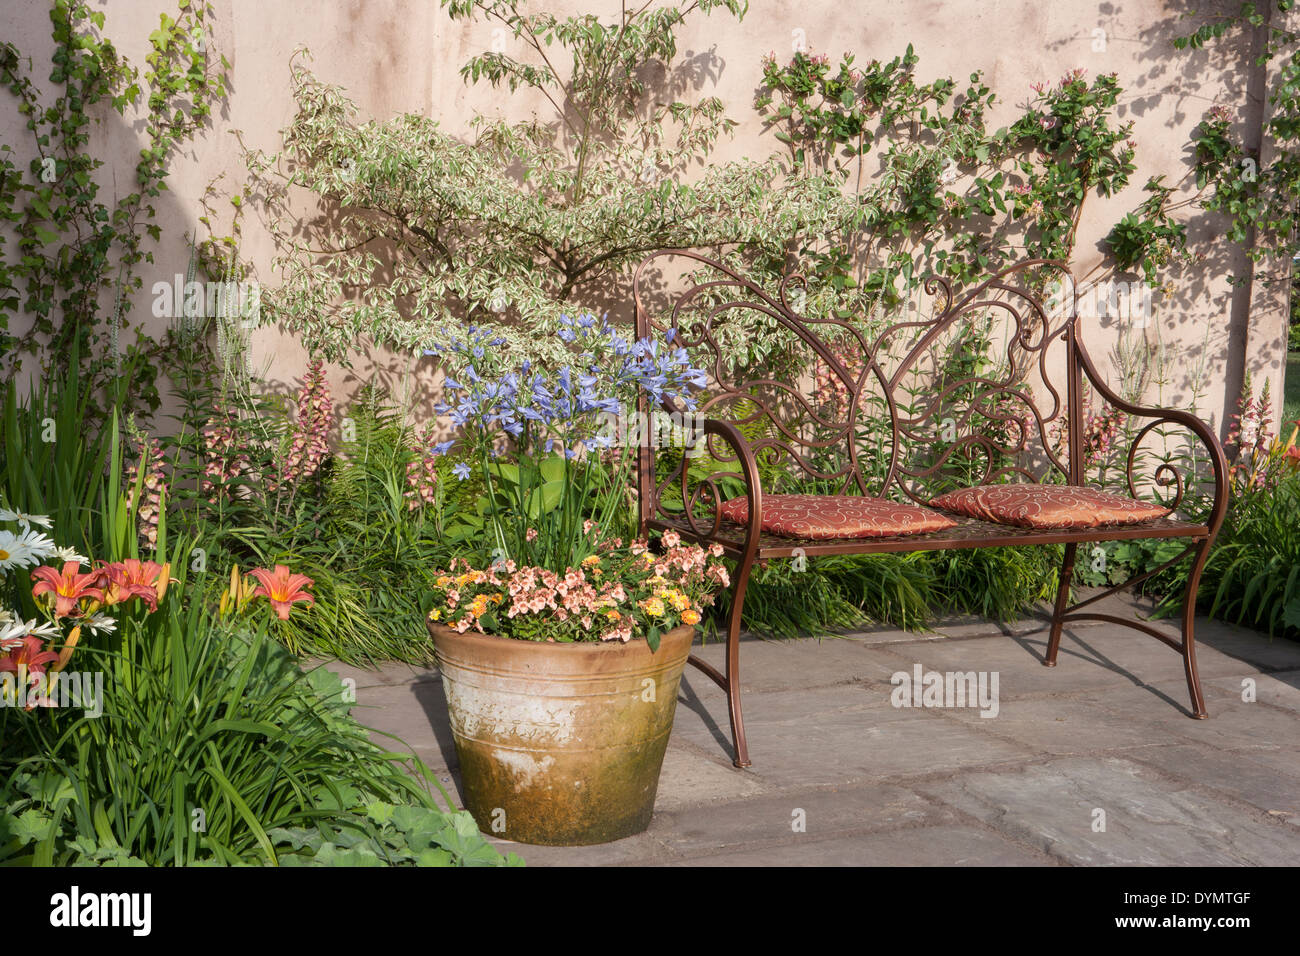 Edwards Gardens Stock Photos & Edwards Gardens Stock Images - Alamy